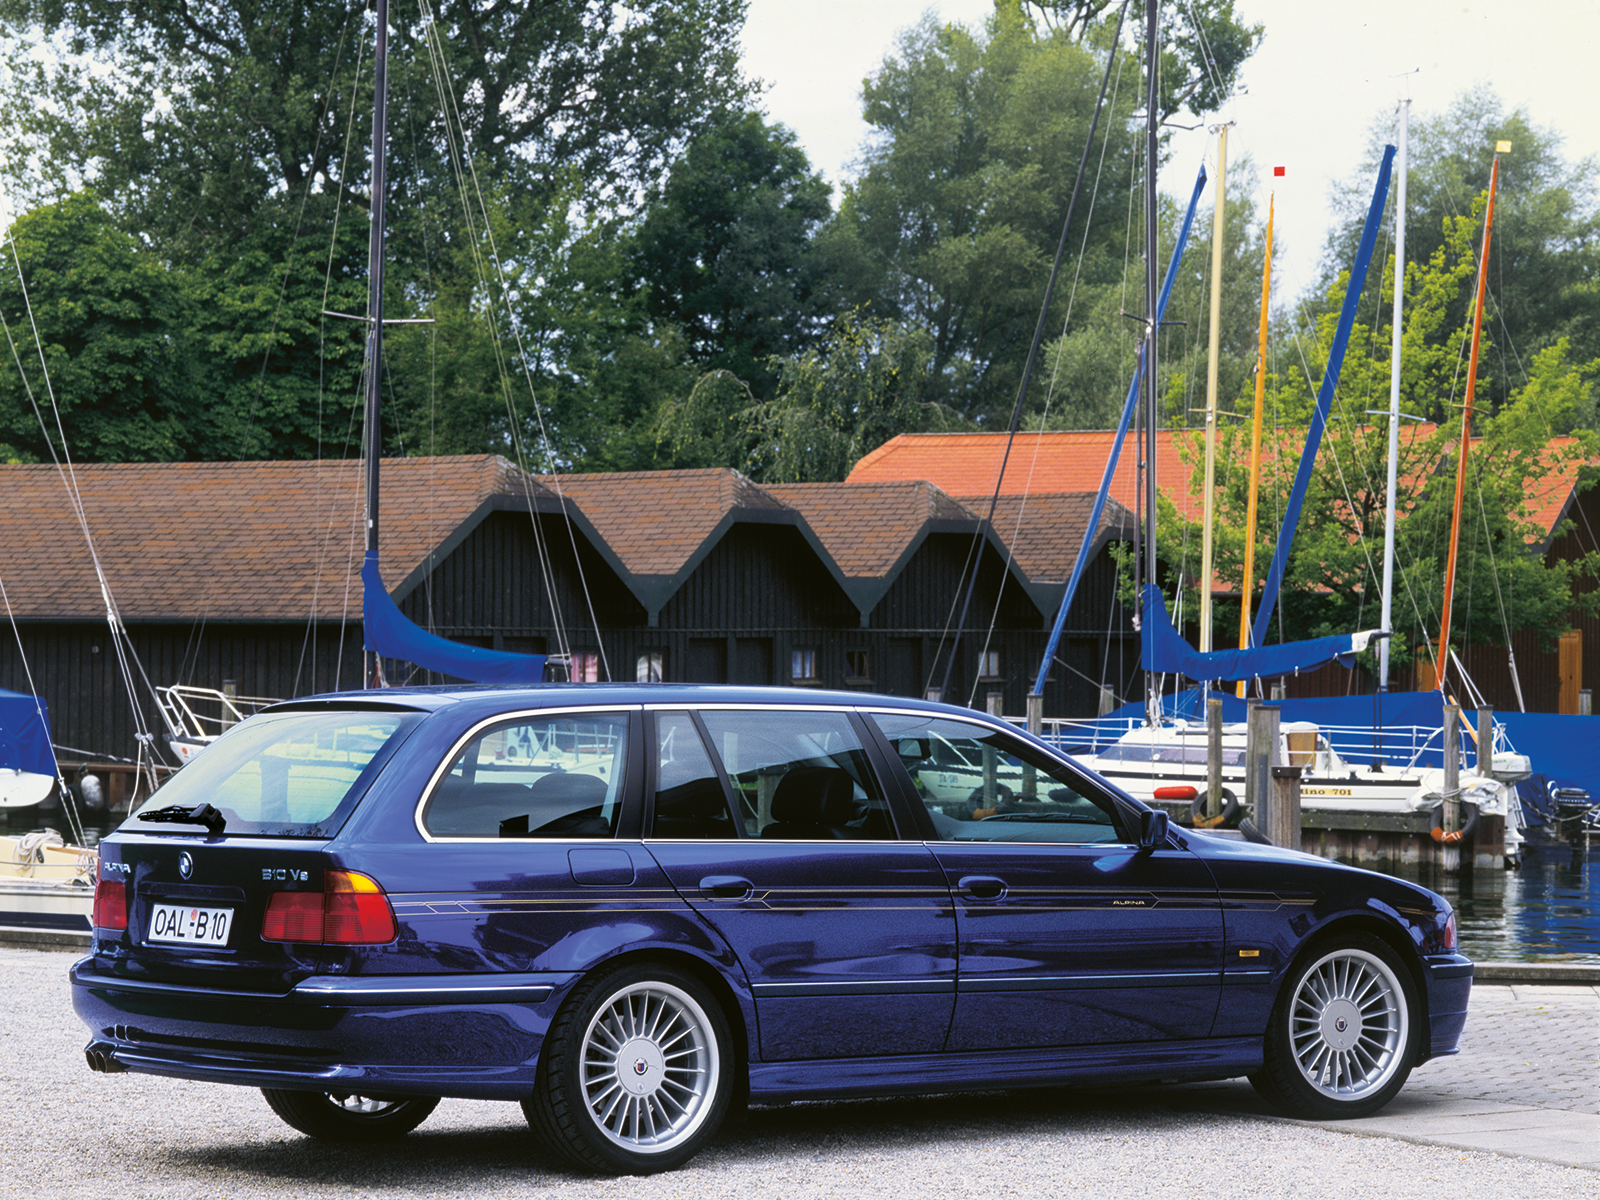 20 Years Of The Bmw E39 Alpina B10 V8 Anniversary In Buchloe 1997 528i Wiring Harness Touring 750x563